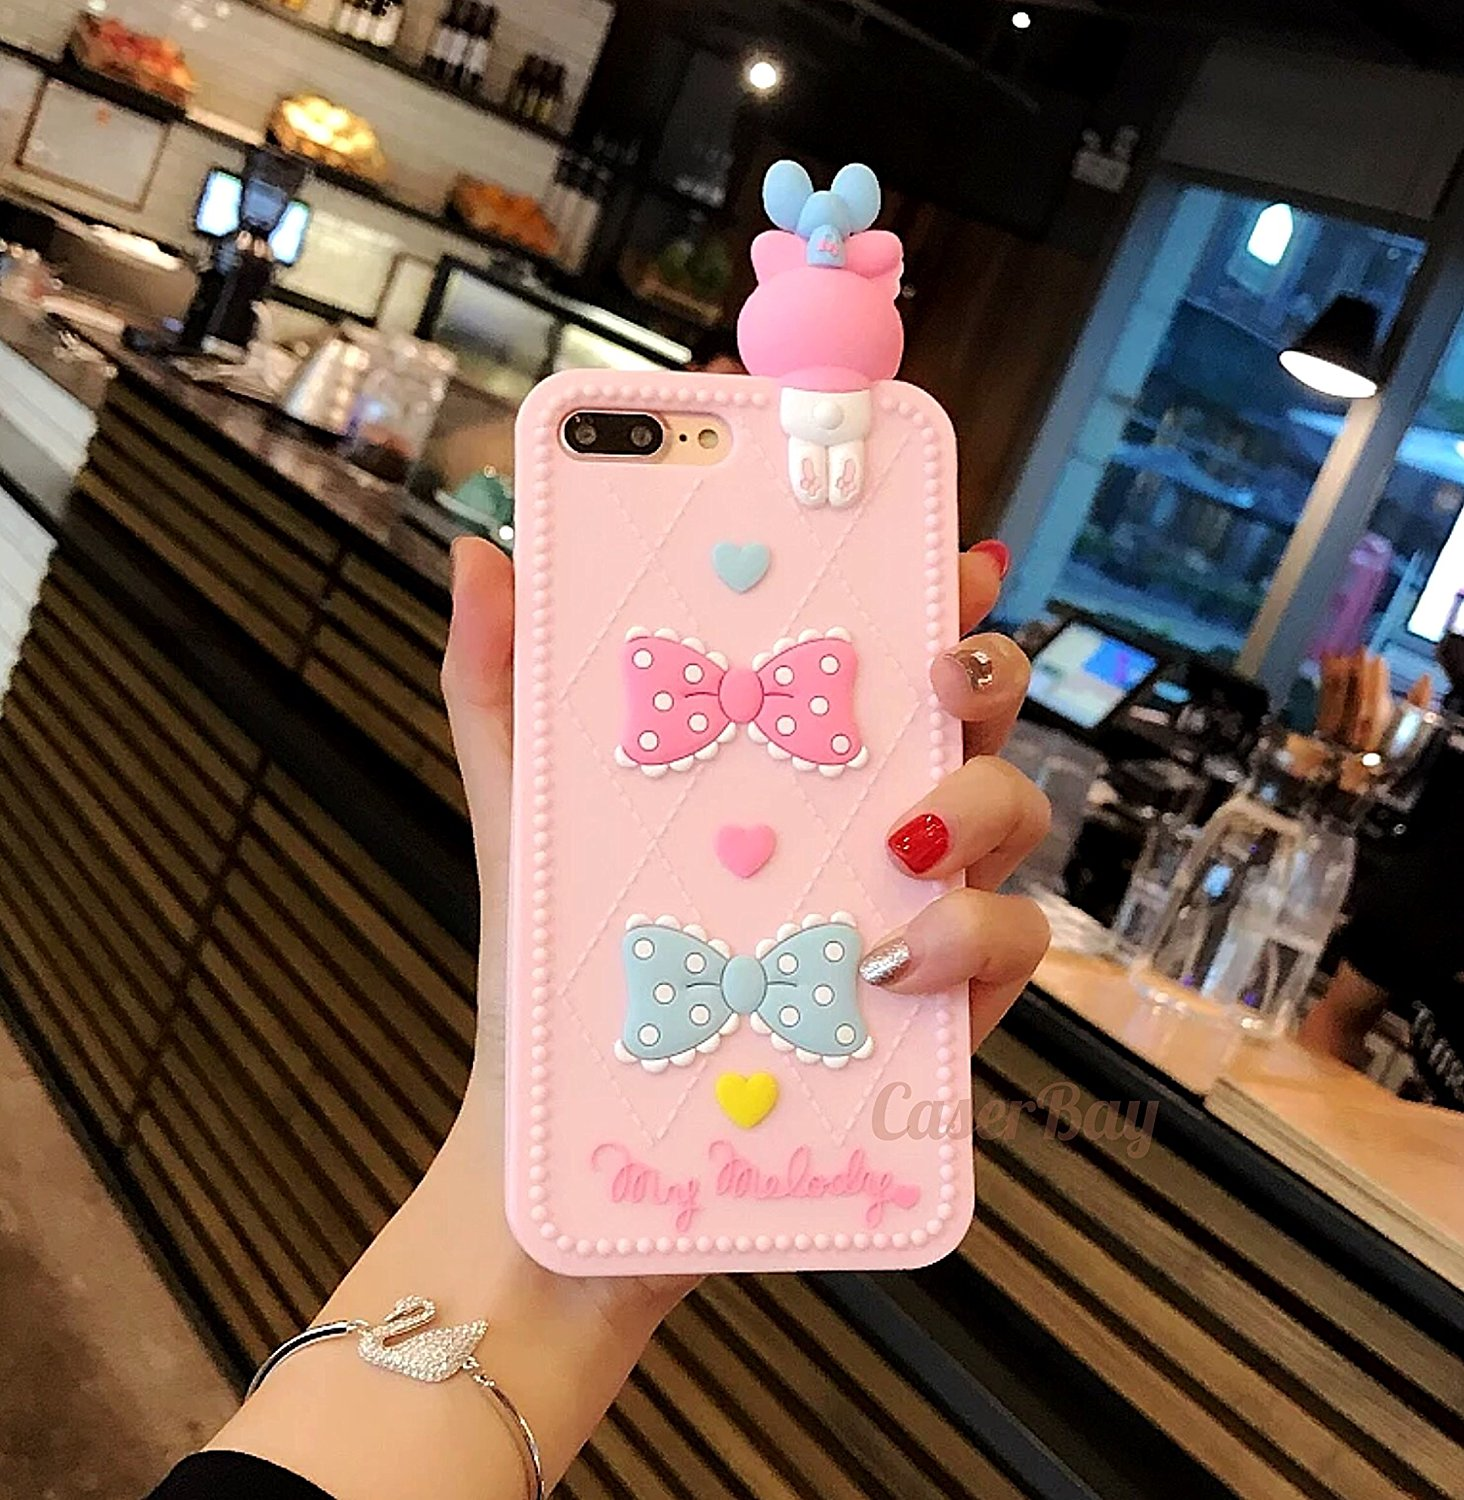 """[CaserBay] iPhone 8 Plus & 7 Plus 5.5"""" Phone Case 3D Cartoon Kawaii Colorful Animal Series Soft Silicone Rubber Cover (My Melody)"""